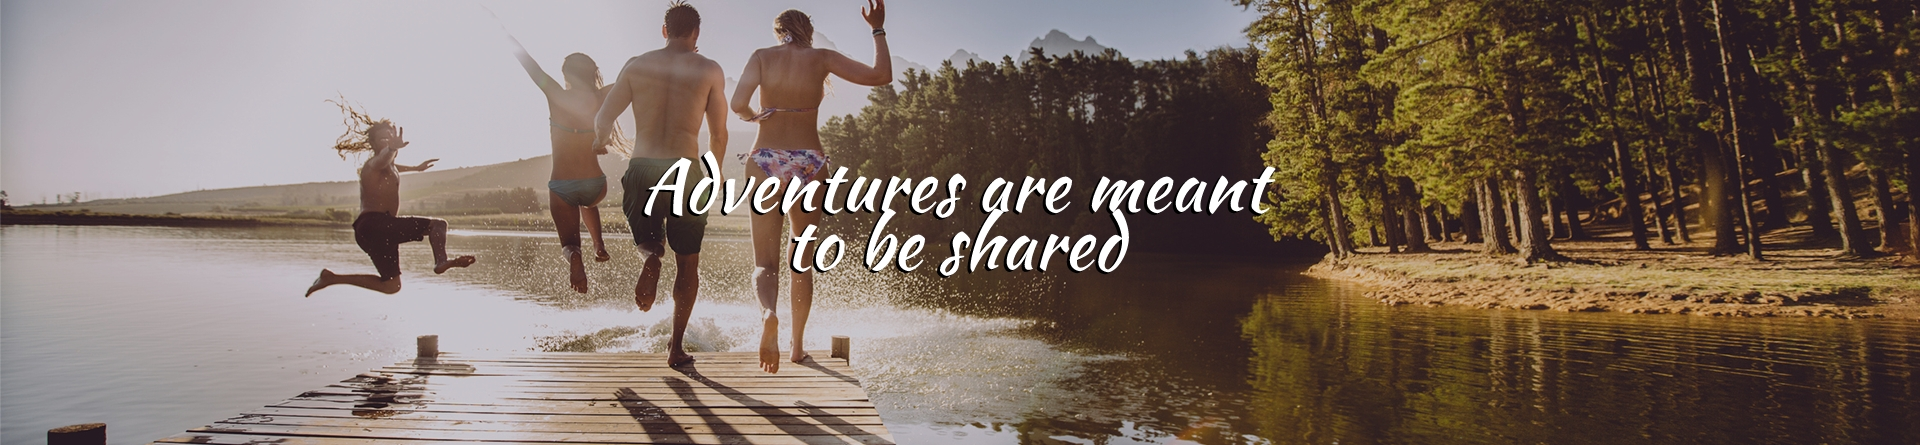 Shared adventures